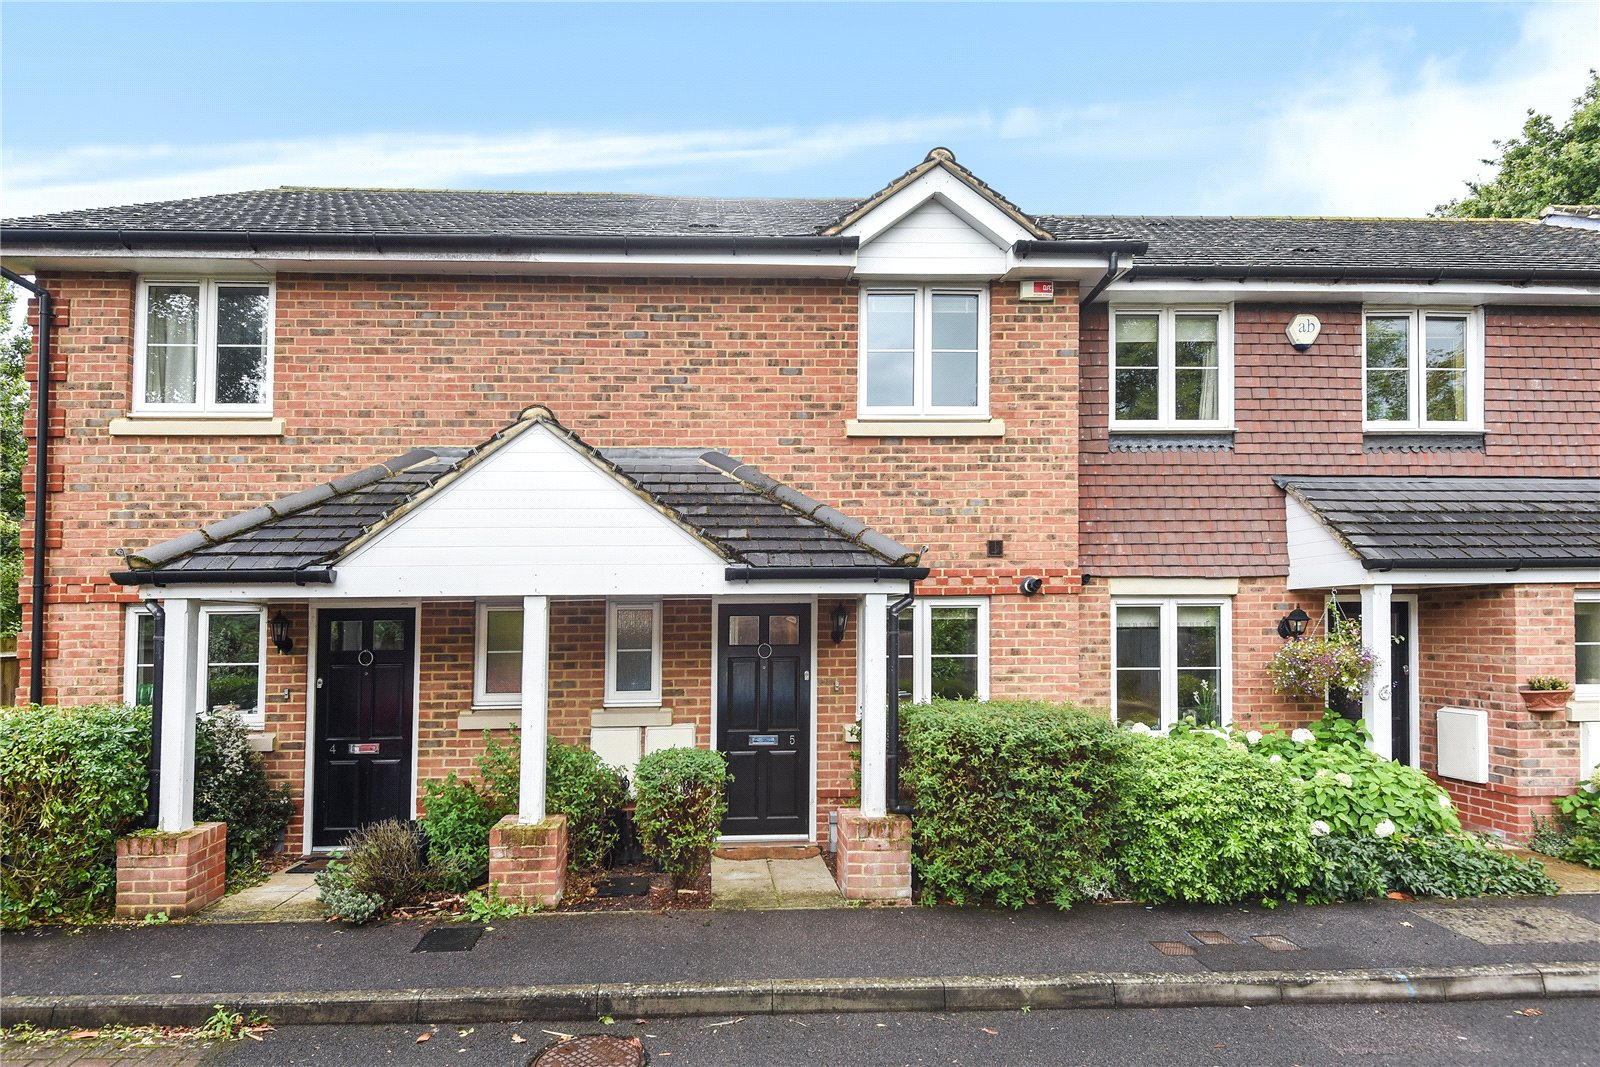 2 Bedrooms House for sale in Rowland Place, Wokingham, Berkshire, RG41